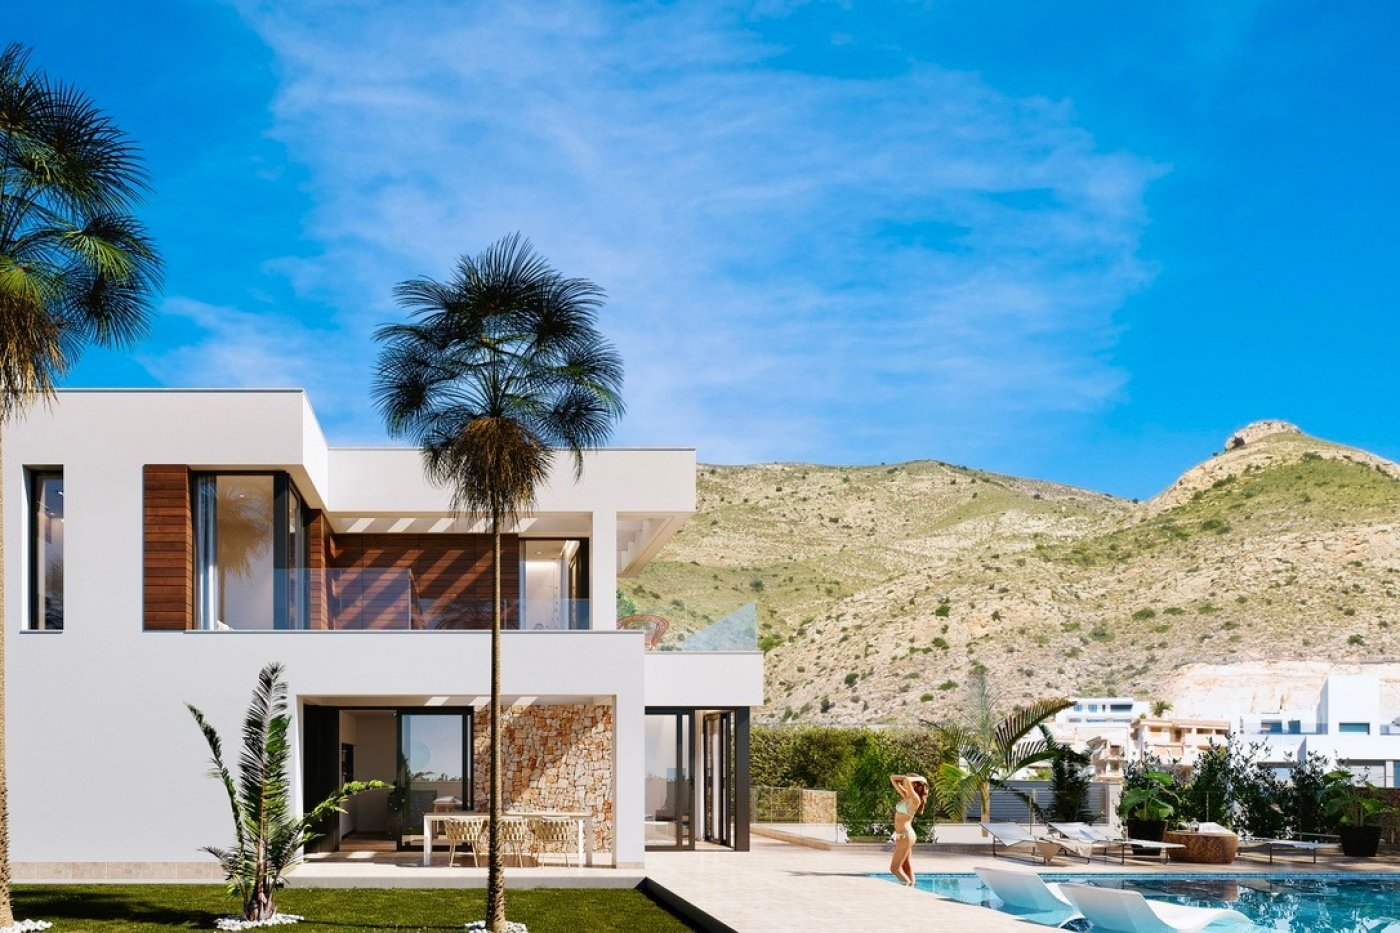 Gallery Image 13 of Luxury villa in Finestrat fantastic views over Benidorm, southwest facing - own pool, large basement